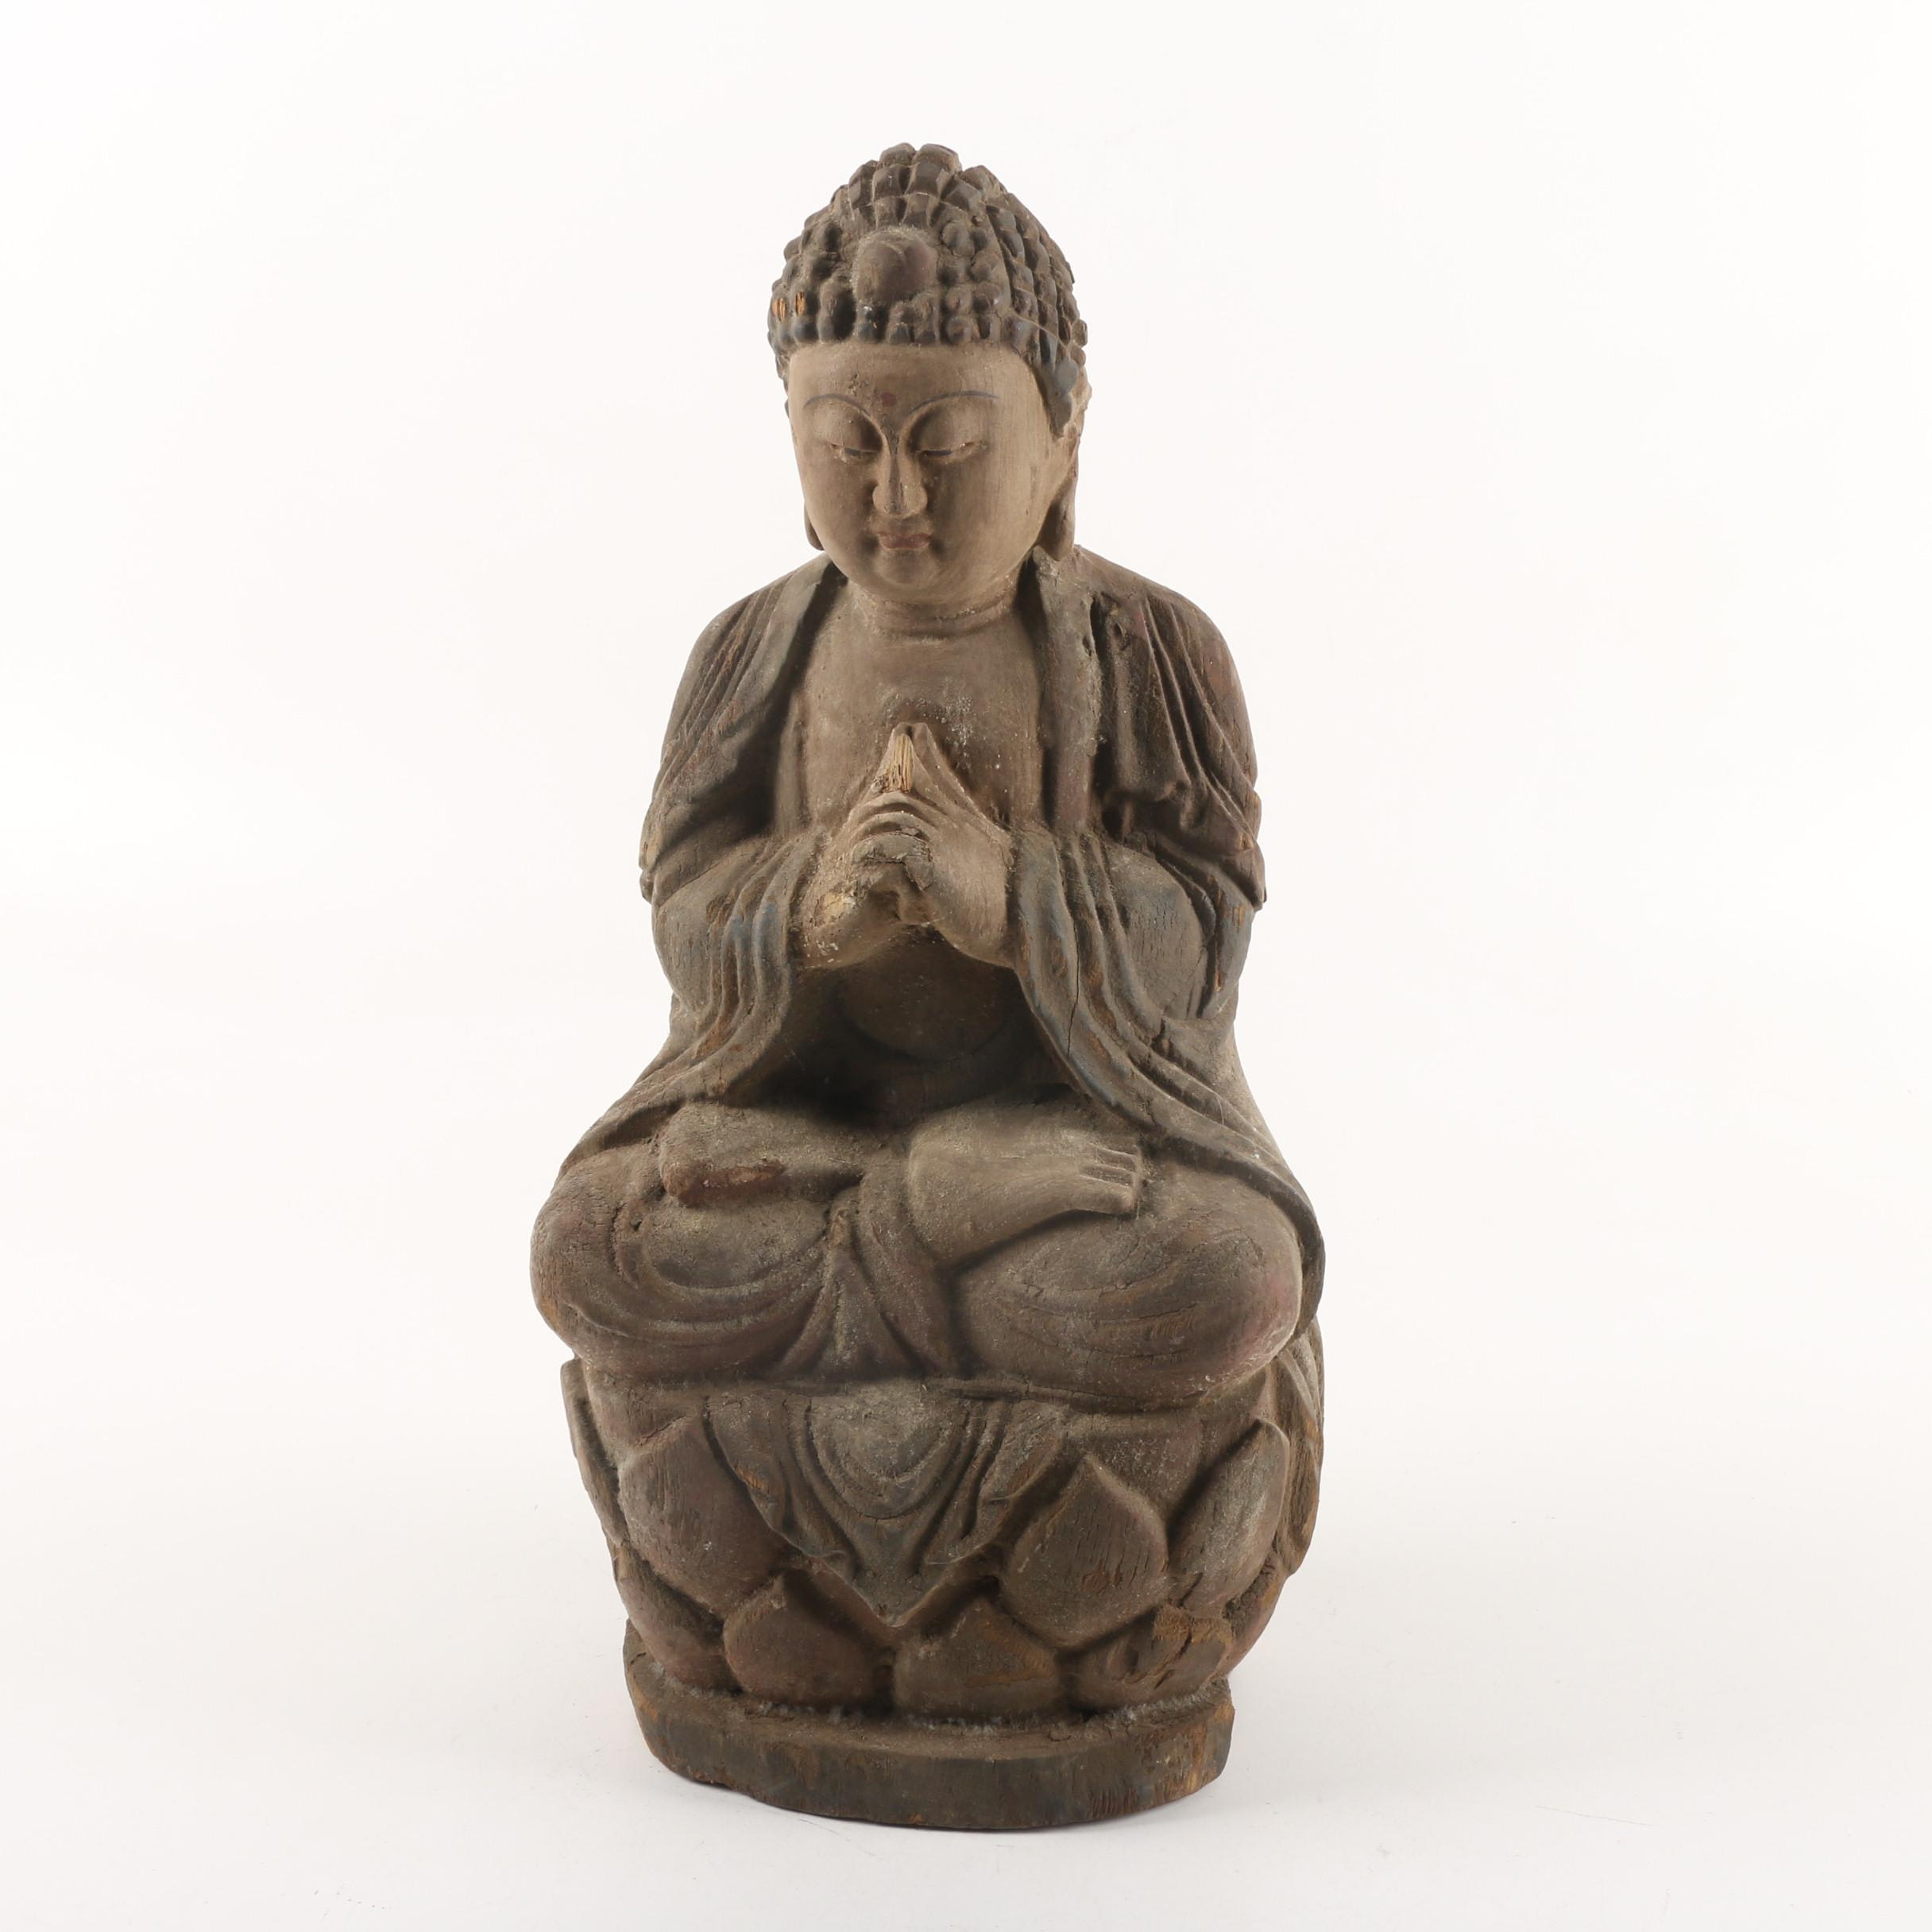 Carved Wooden Meditative Buddhist Style Statue